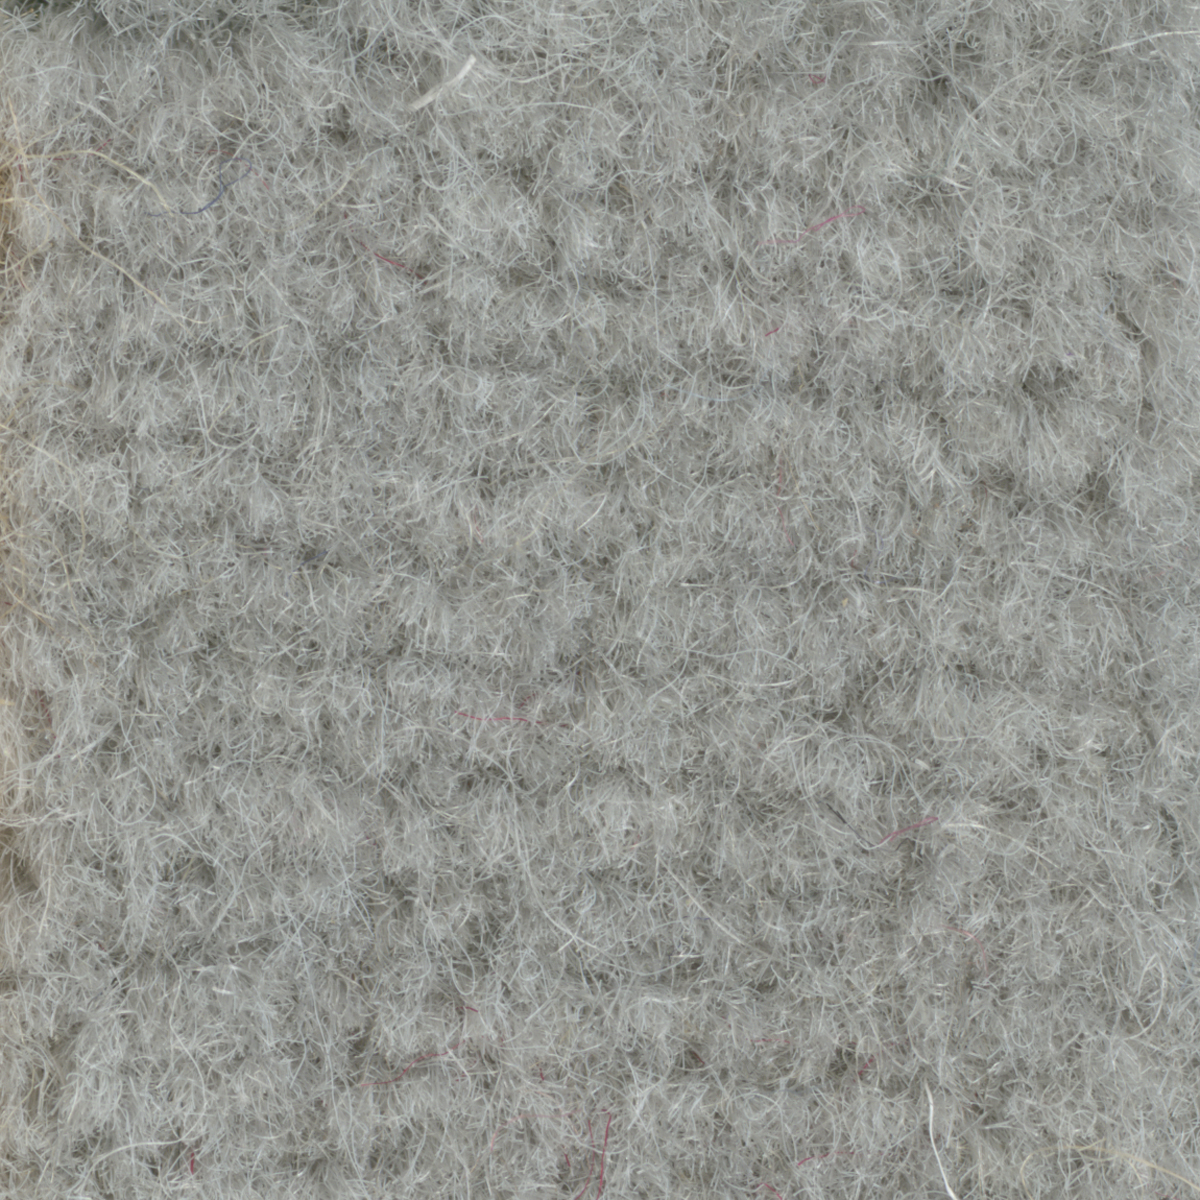 DOVE GREY ENGLISH WILTON II WOOL CARPET